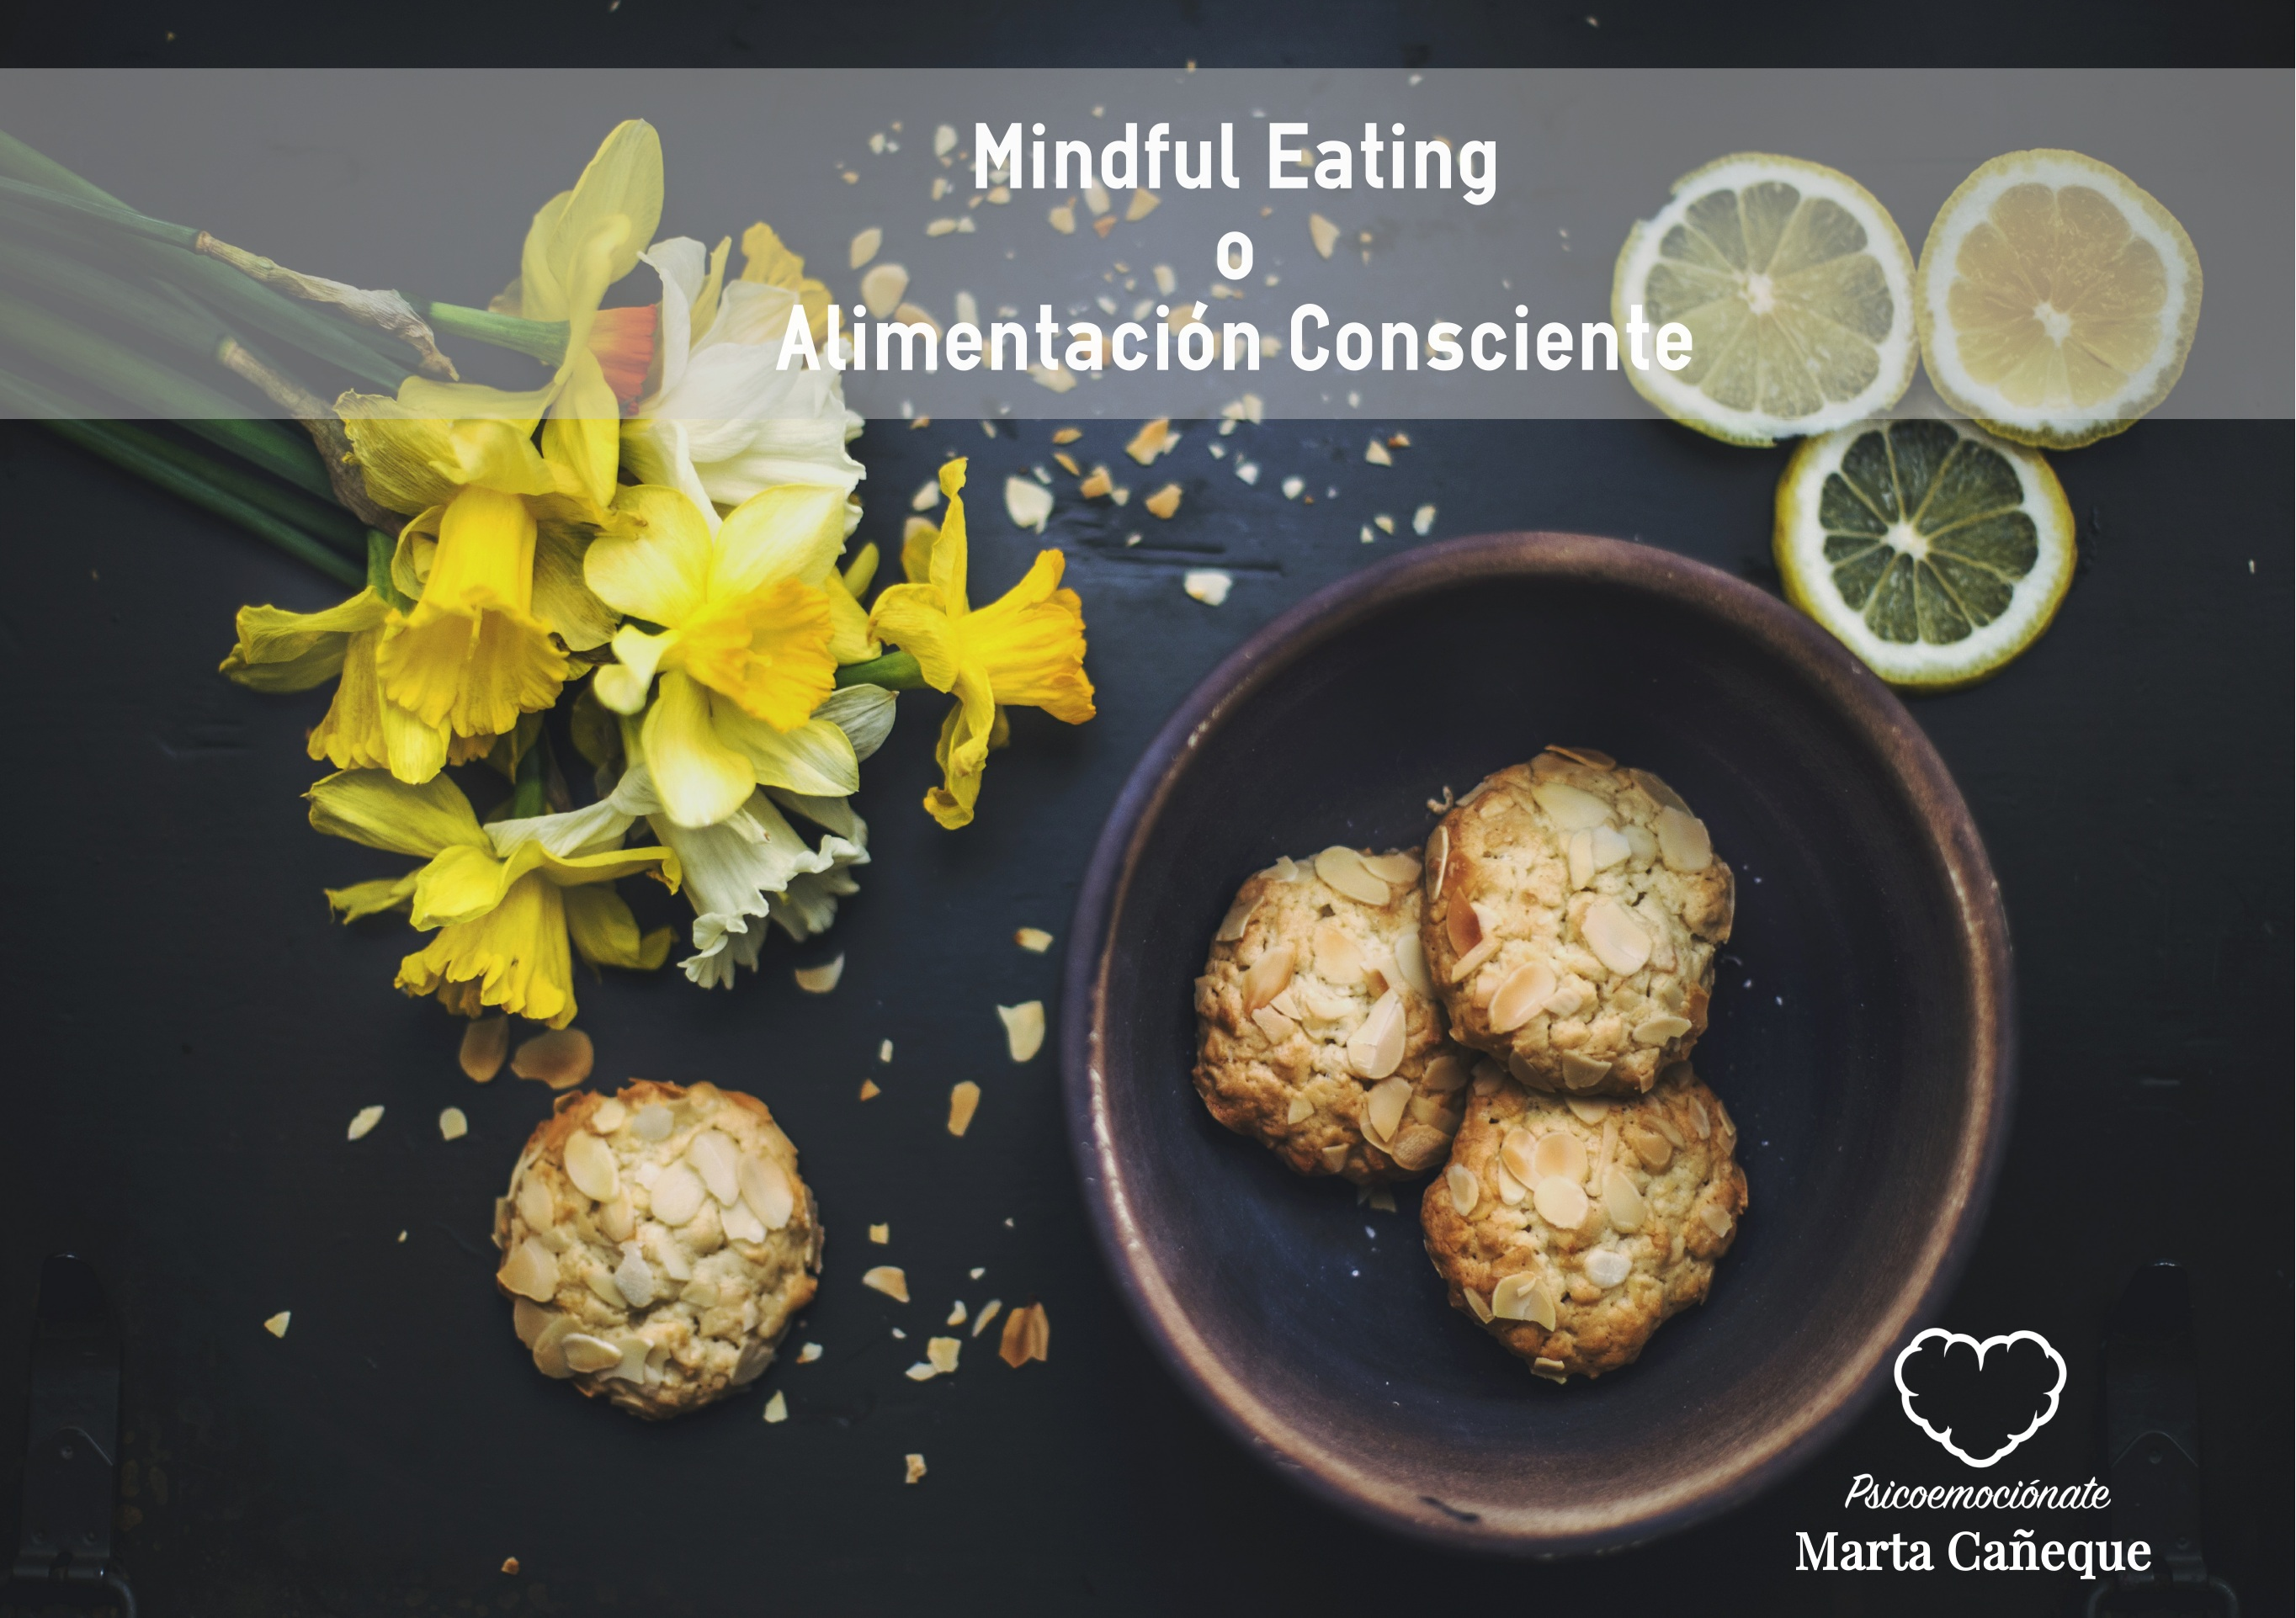 Mindful Eating alimentación consciente psicoemocionate